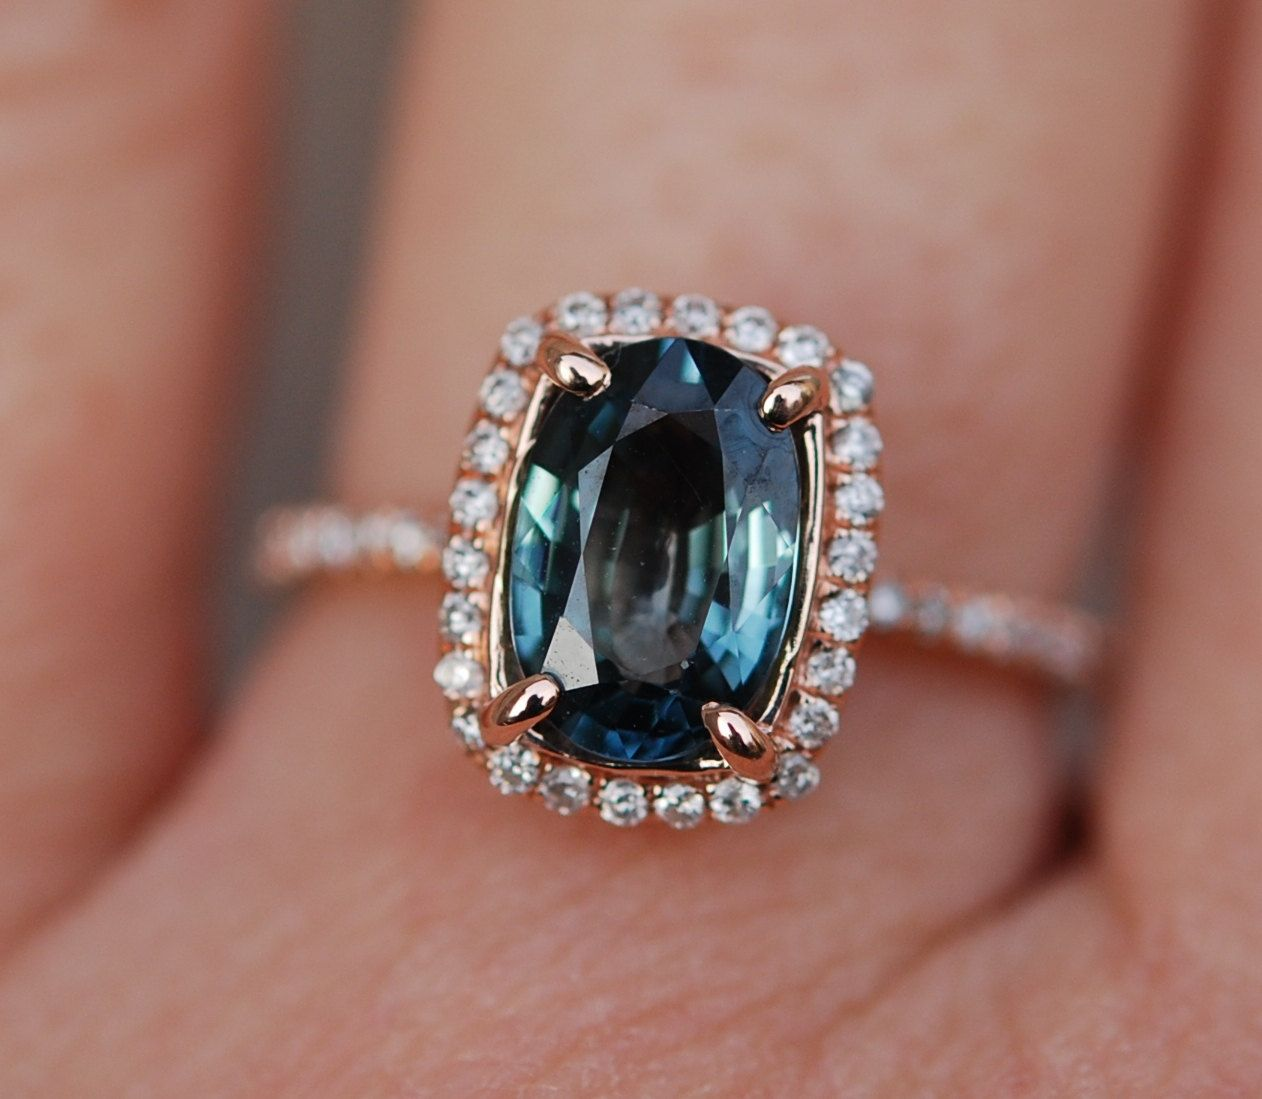 »Blue Green sapphire engagement ring. Teal sapphire 1